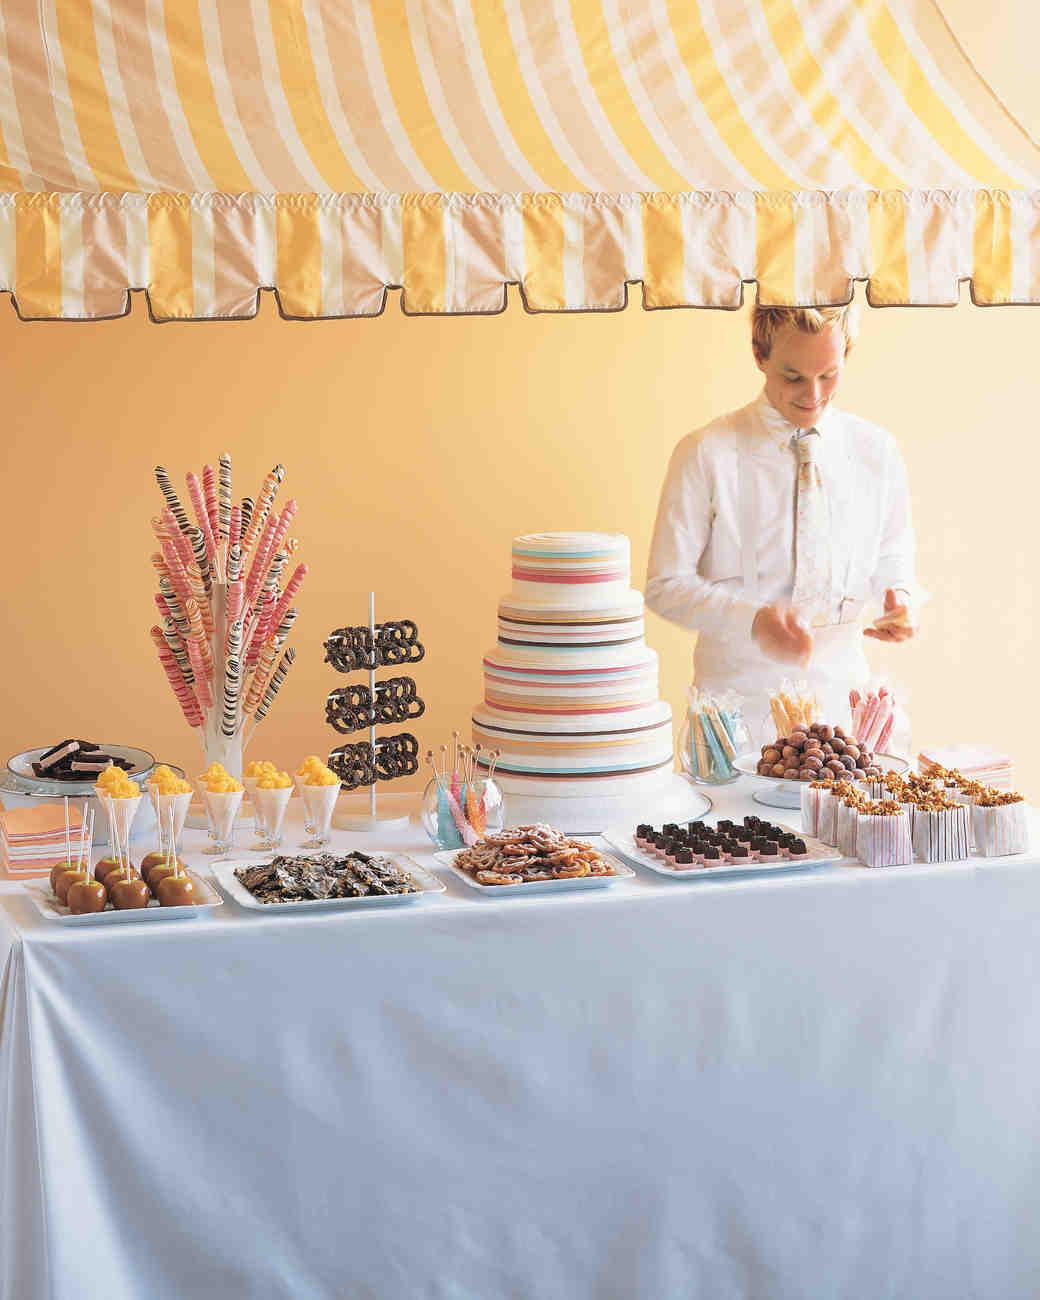 8 Wedding Snack Bar Ideas for Serving Food and Drinks to